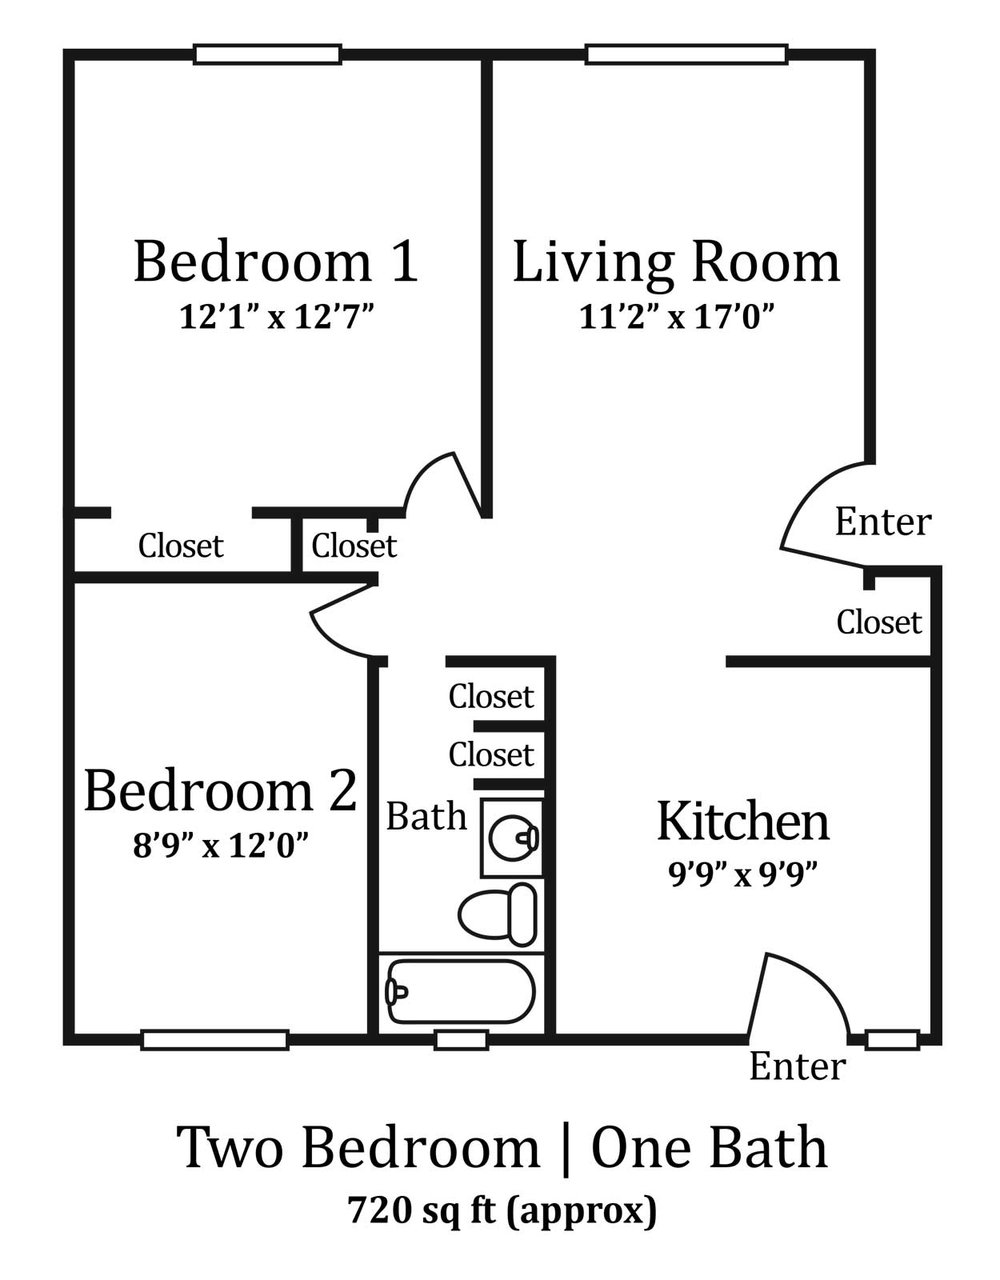 Marine-Gardens-Two-Bedroom-B-Floor-Plan.jpg